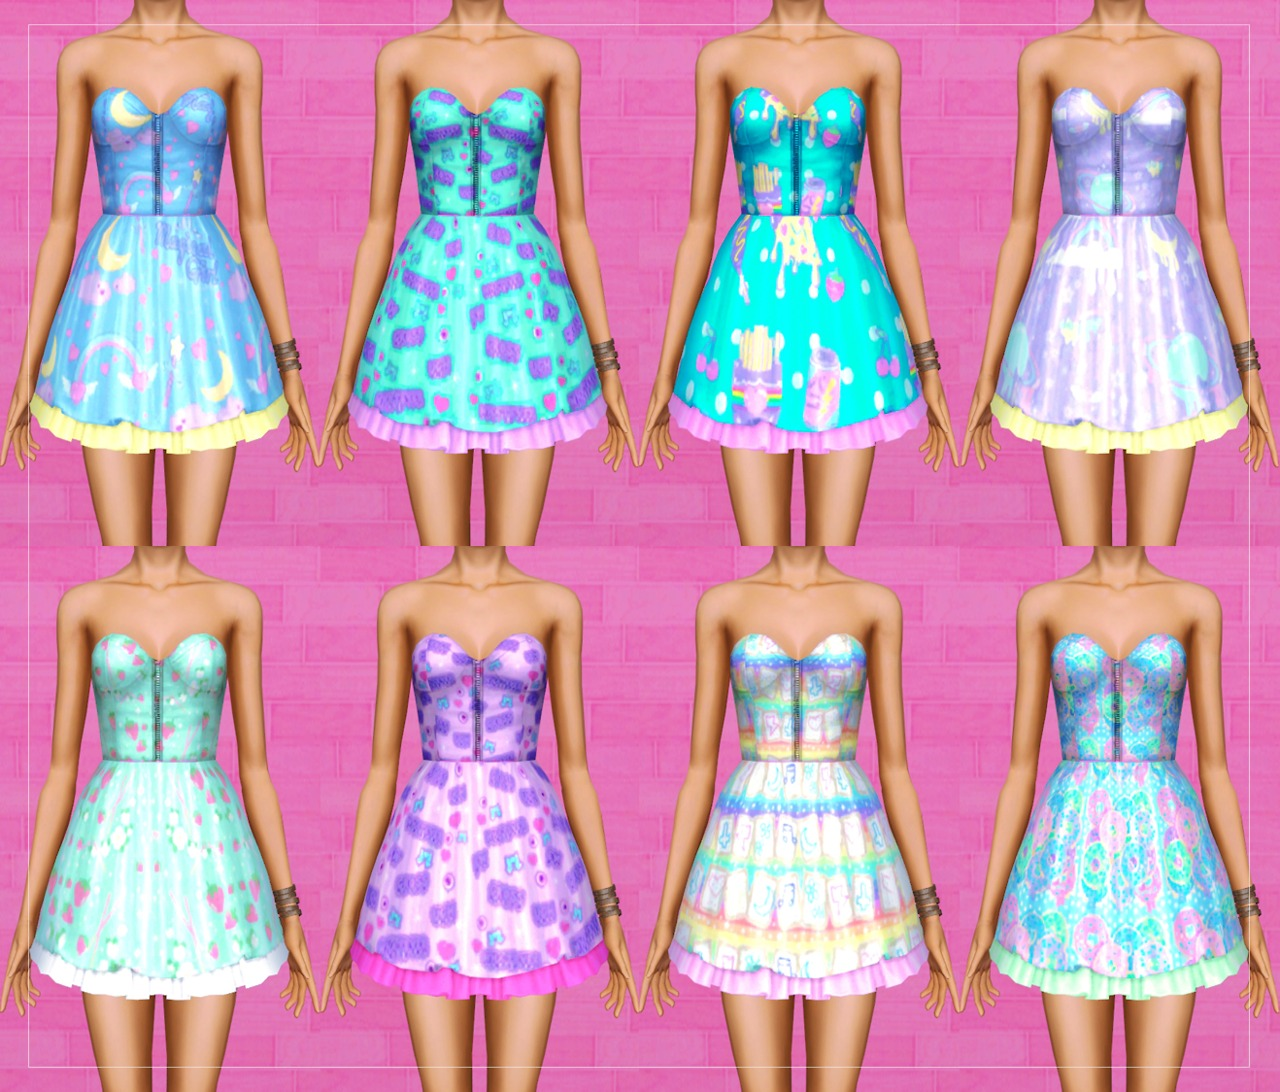 8 Adorable Dresses by Pixelatedwonderland